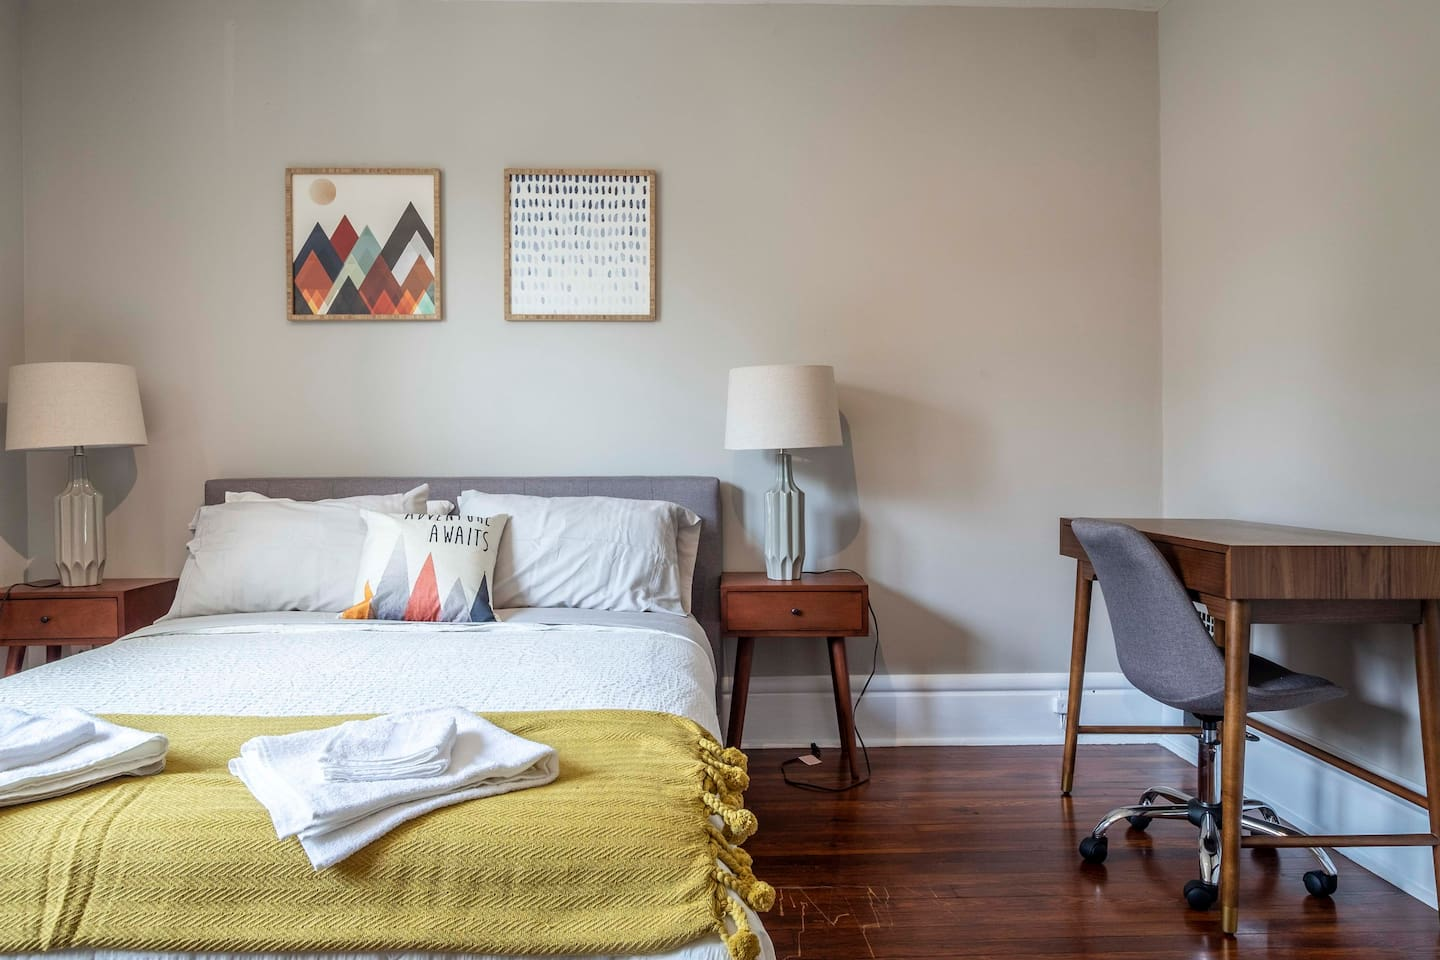 Comfortable and bright room is waiting for you! Luxury mattress, premium linens,   fresh towels, designer furniture, and many thoughtful design touches throughout the room. You'll feel right at home the moment you walk into your room :)